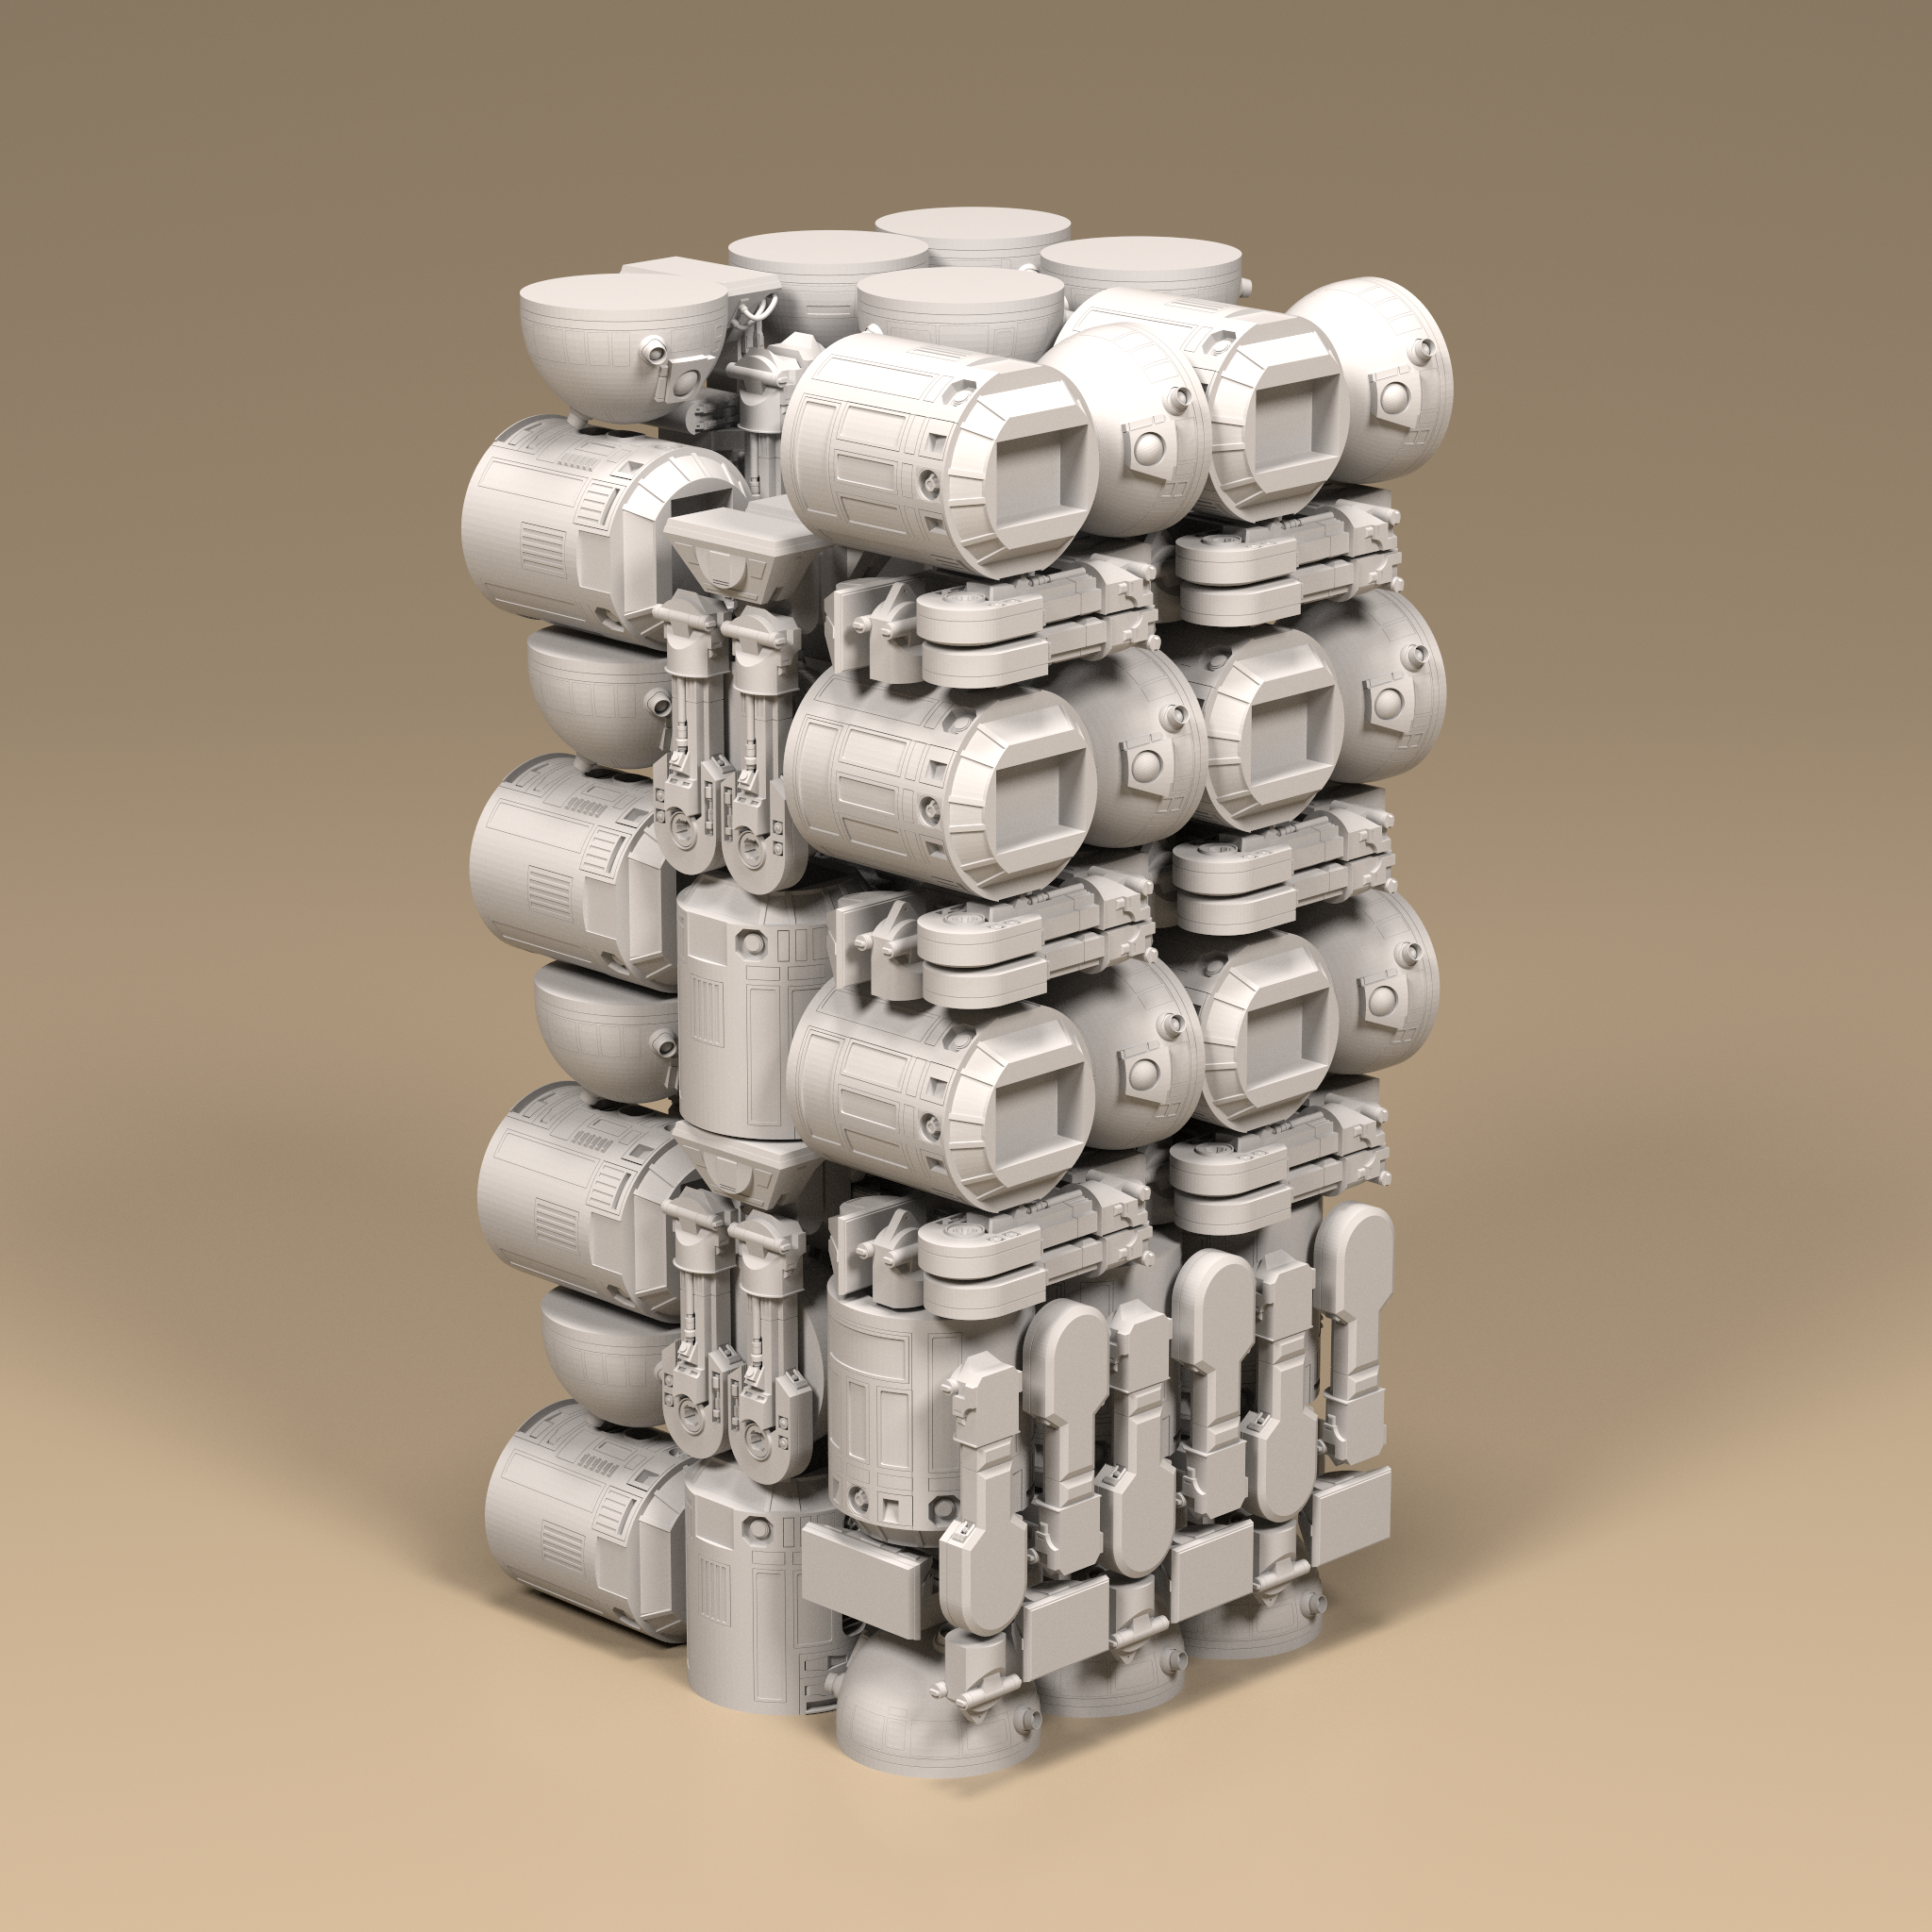 With smart packing, Fogleman's algorithm can pack 27 large droids. Image via Micheal Fogleman.